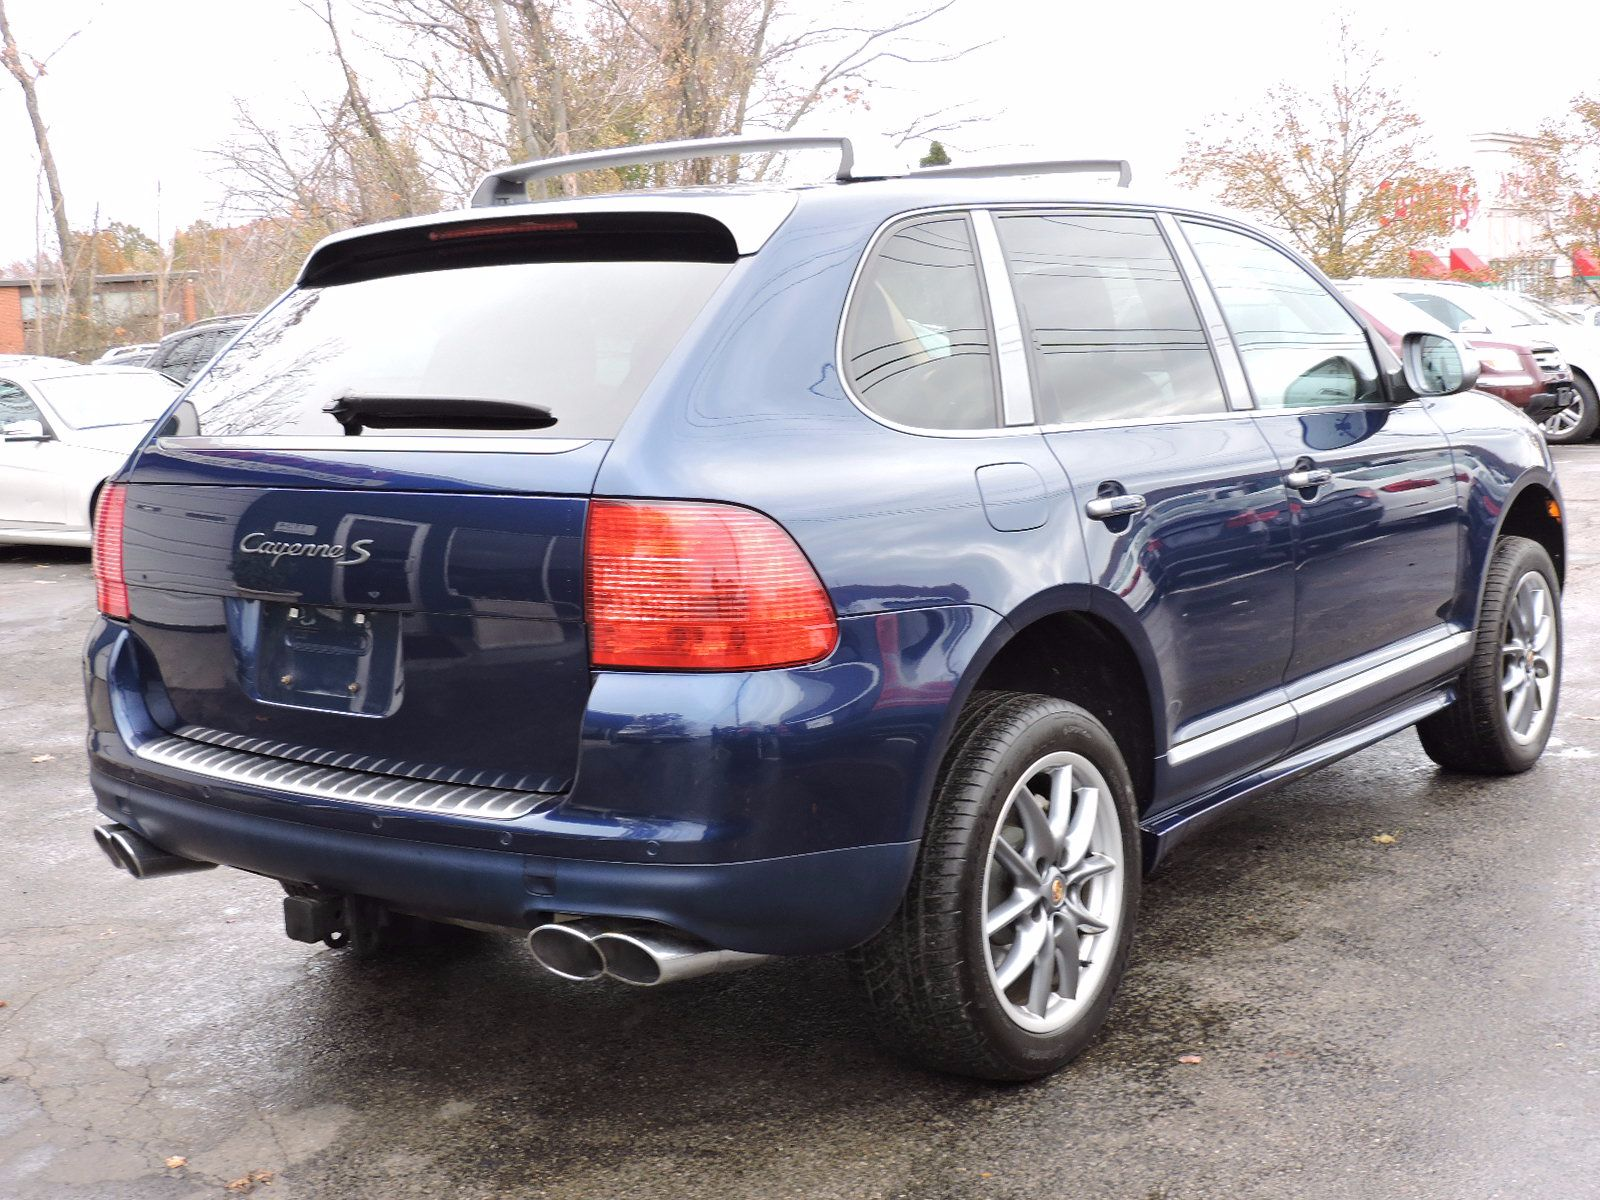 2006 Porsche Cayenne S Titanium Edition - All Wheel Drive - Navigation